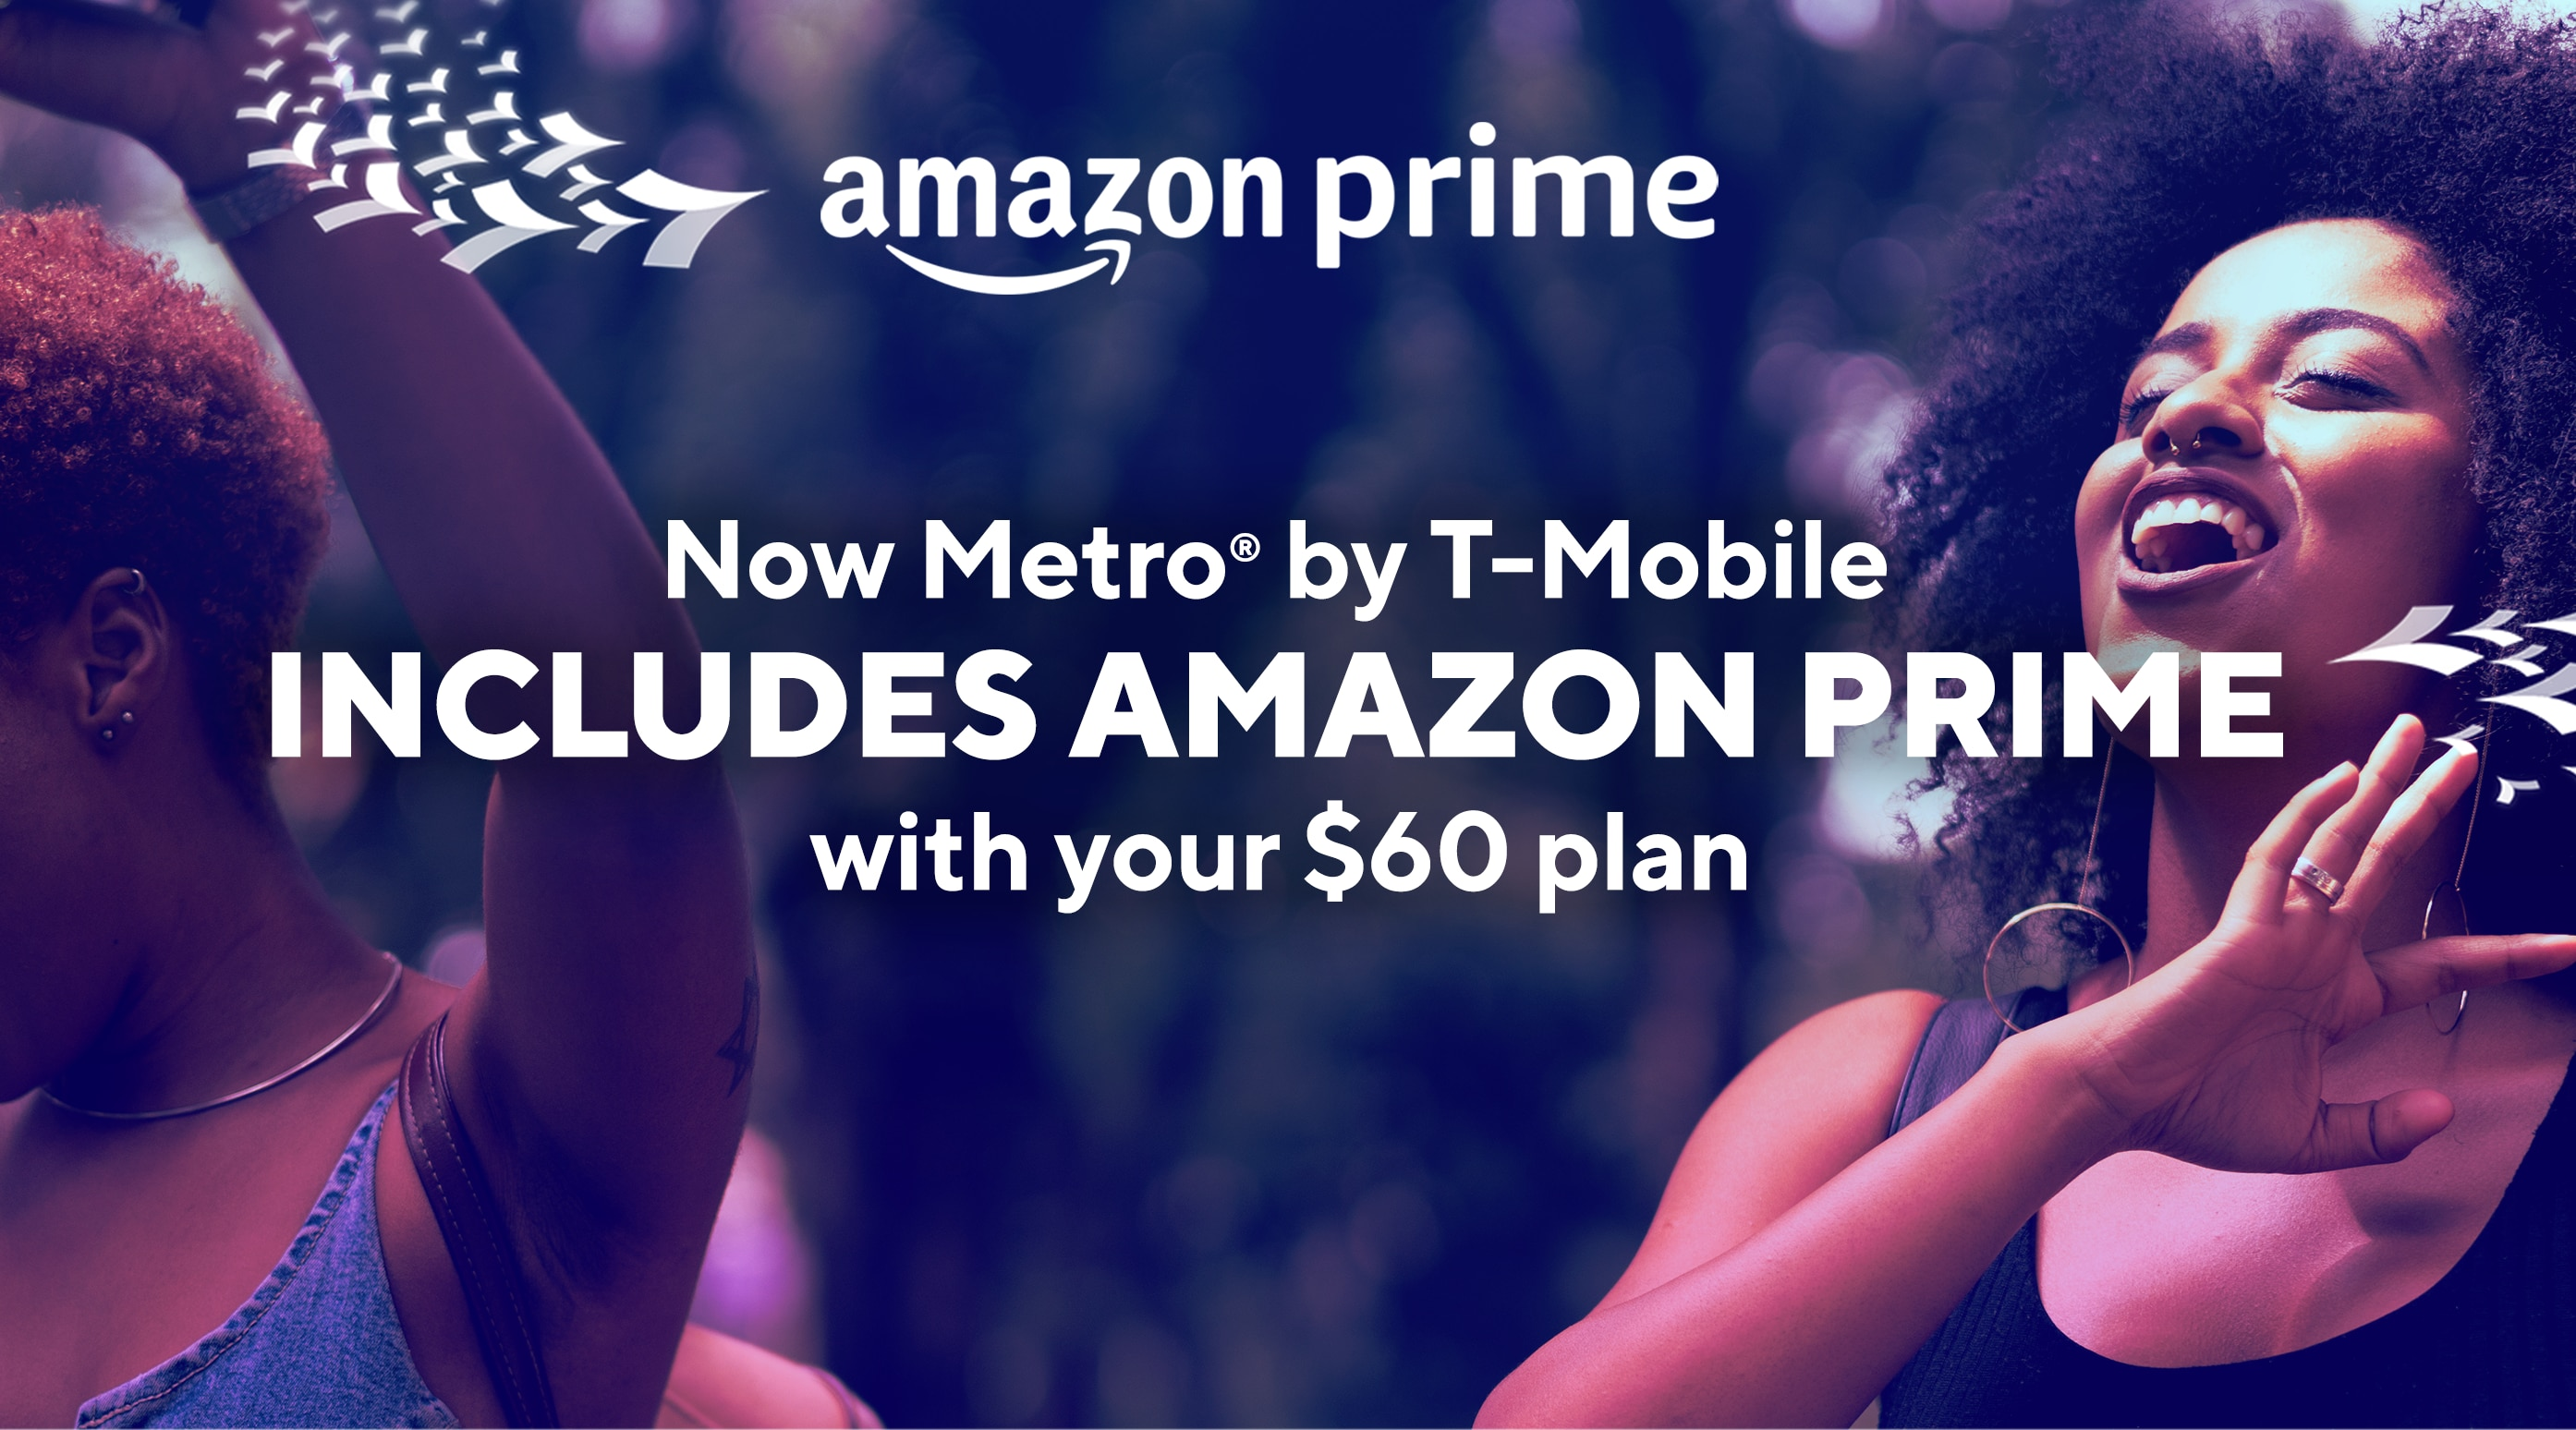 e2e50071ea4789 Amazon Prime. Now at Metro by T-Mobile includes Amazon Prime with your $60